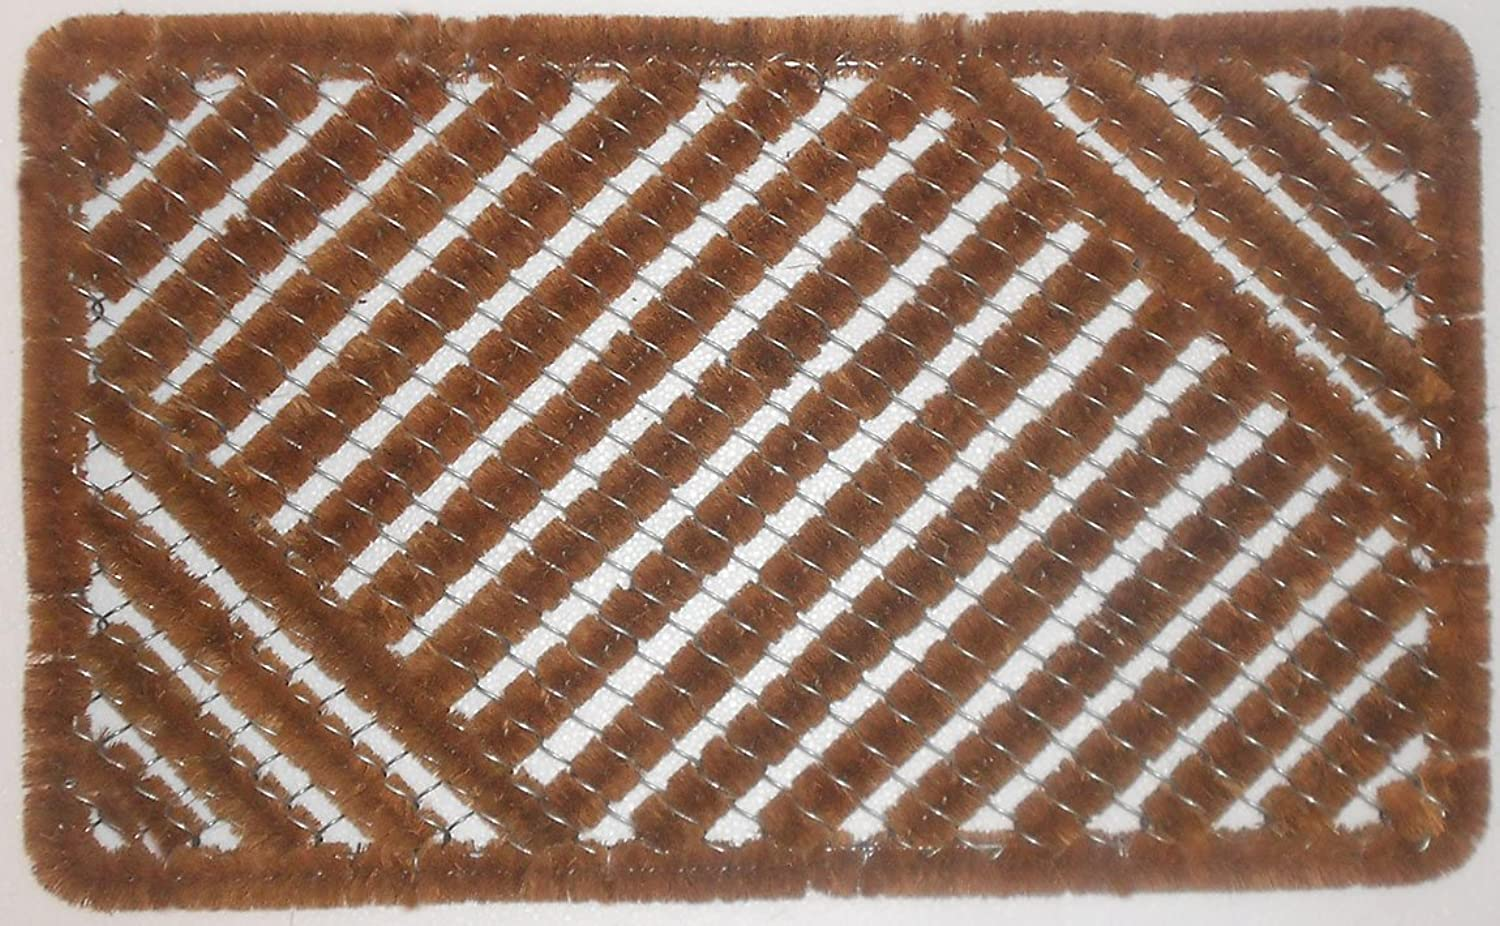 Happy House Coir Wire Door Mat Handmade Premium Quality Dimensions  29.5  (Length) x 17.8(Width) x 1.3  Thickness, Weight 4.5 Lbs.